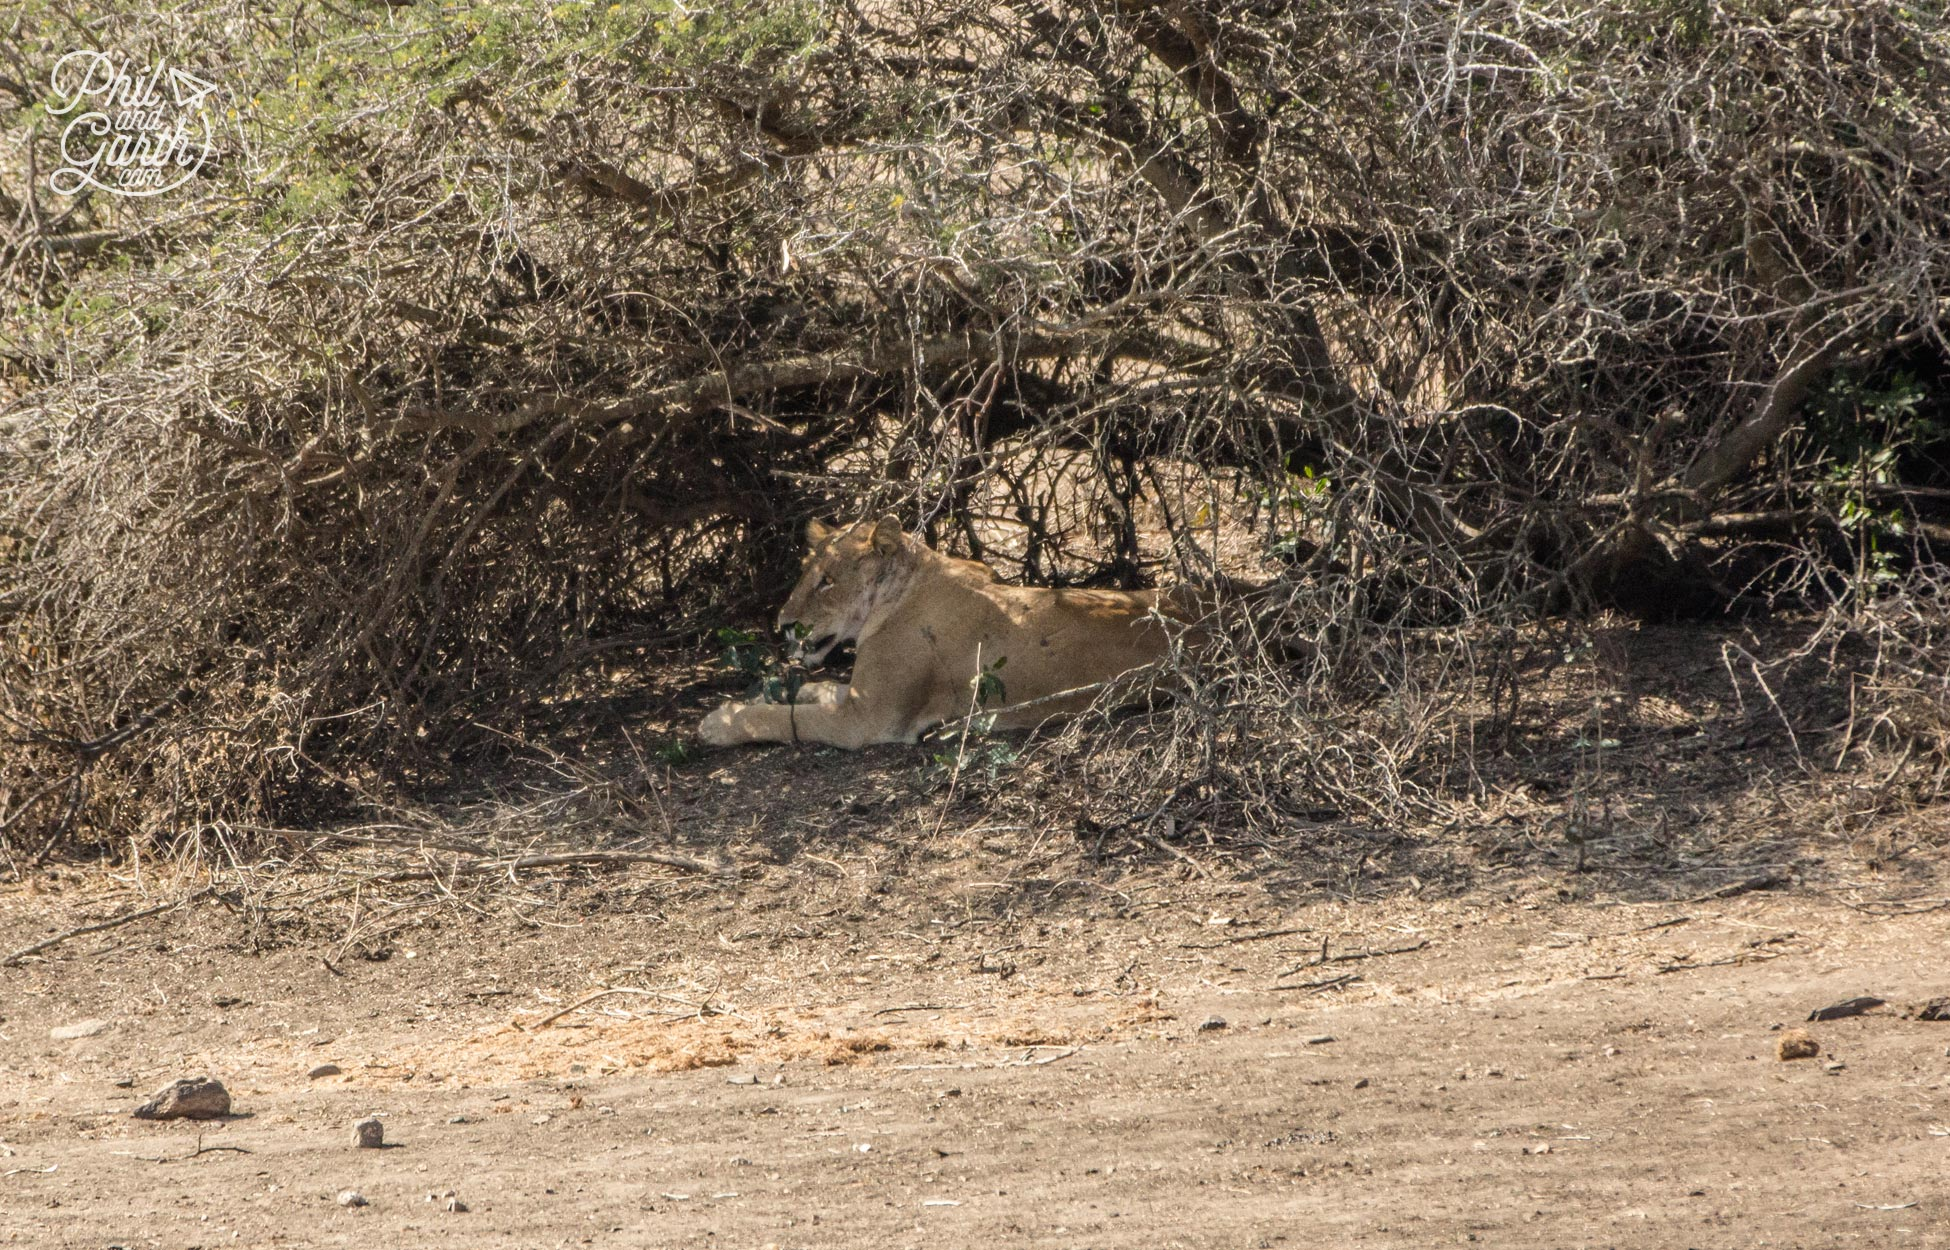 A lioness sits under the shade of a tree, Garth managed to capture her on his long camera lens